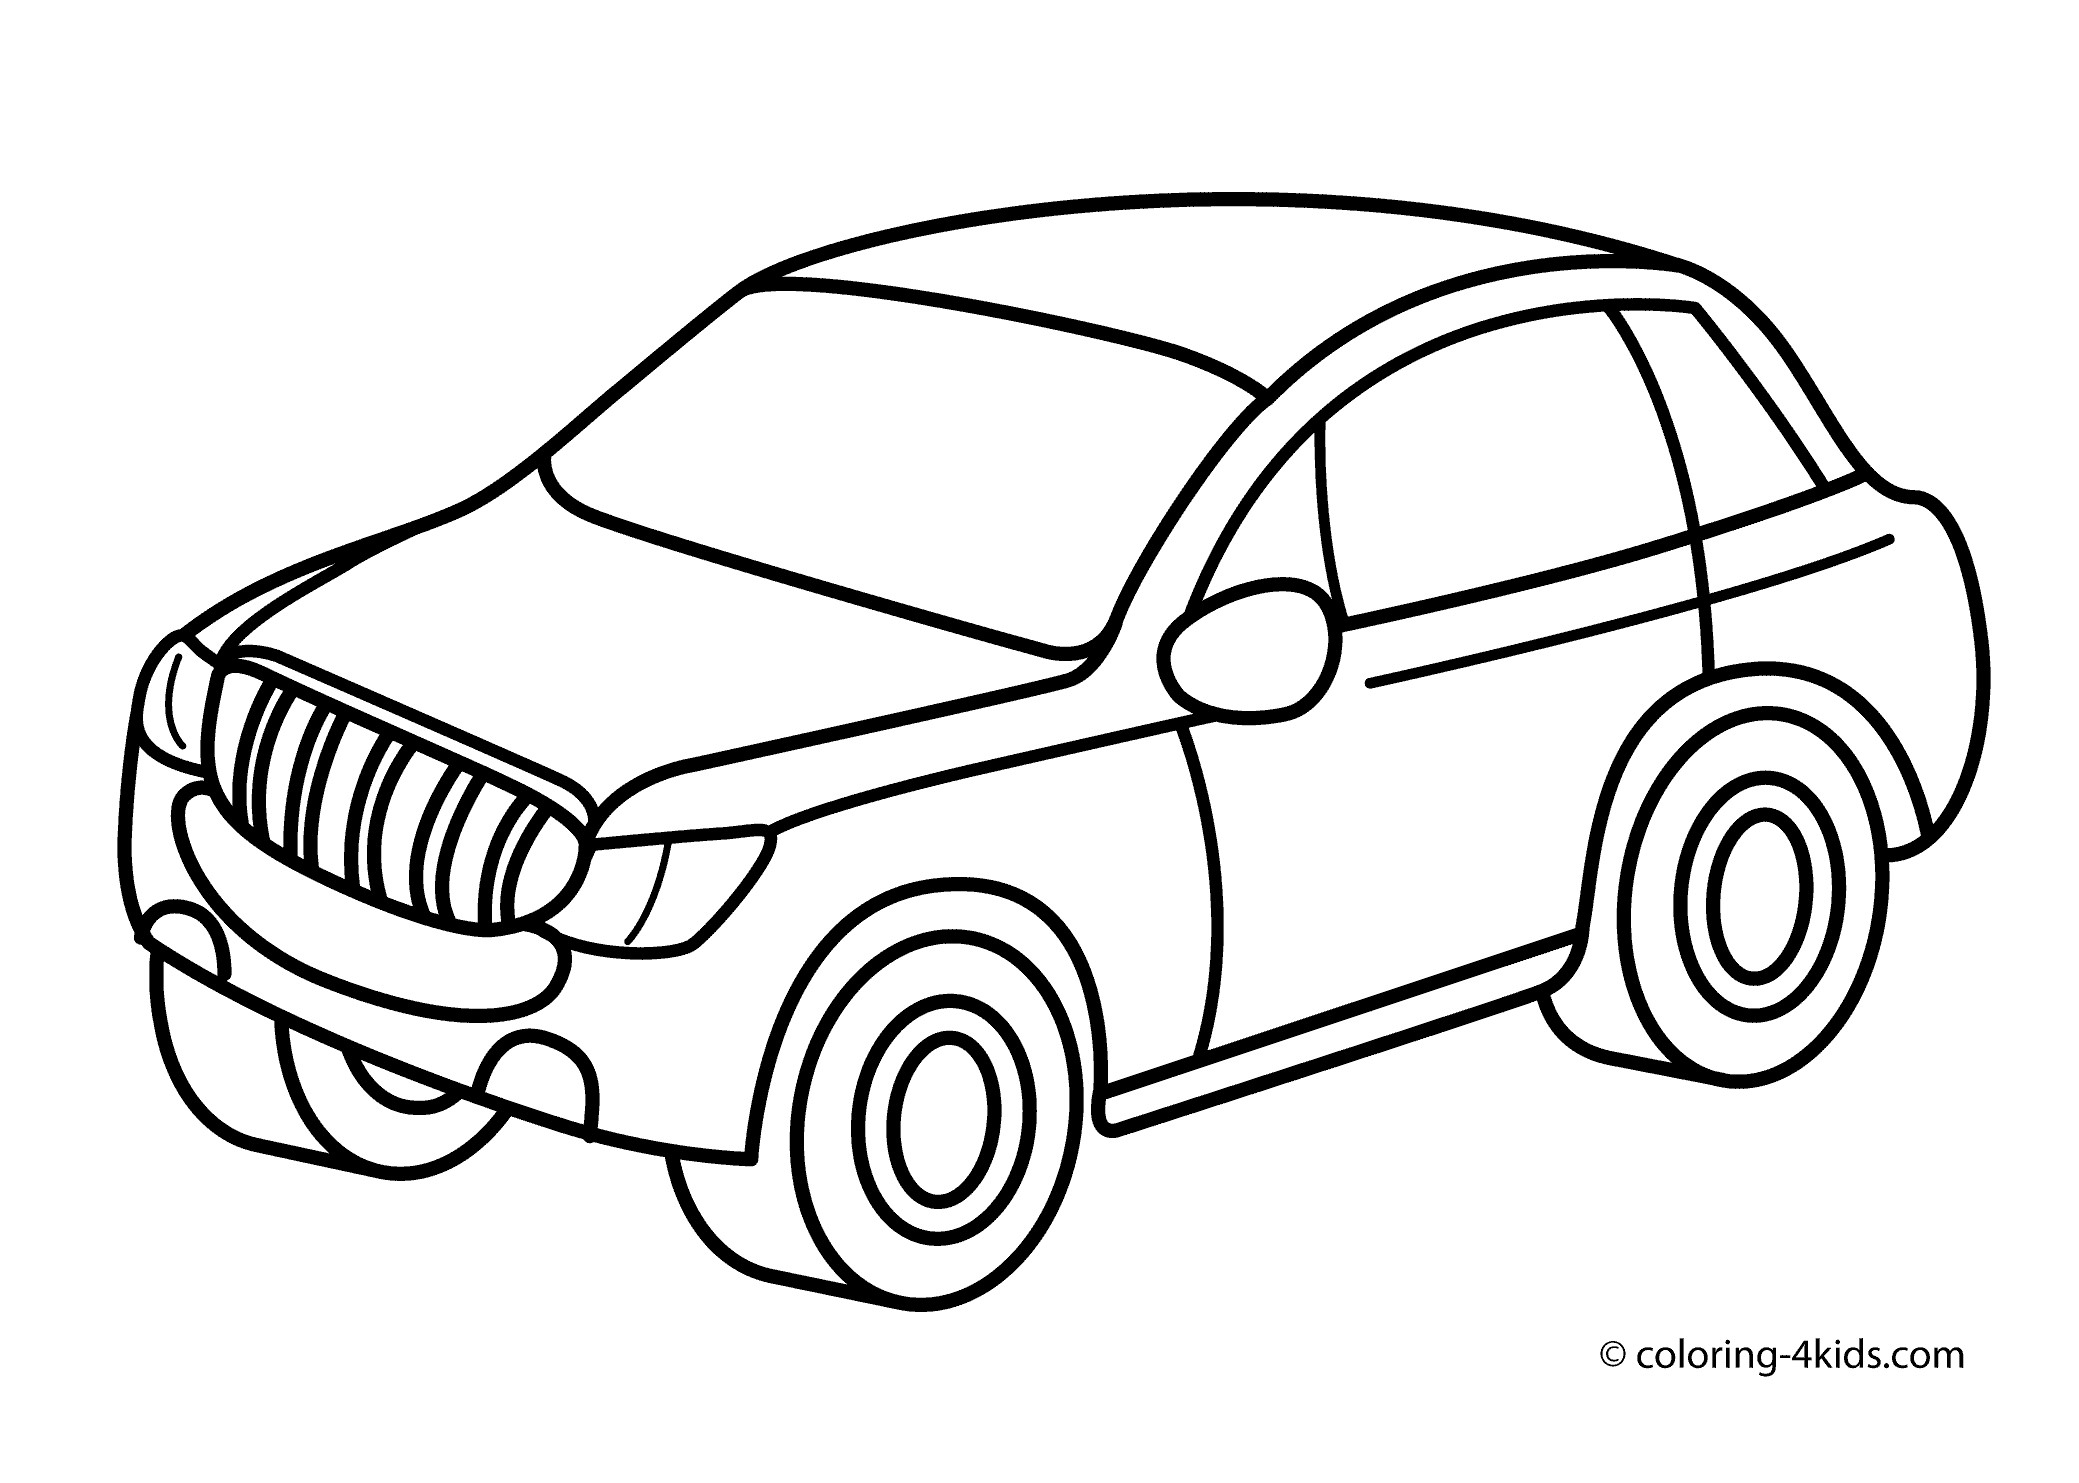 2079x1483 Jeep Car Transportation Coloring Pages For Kids Printable Police